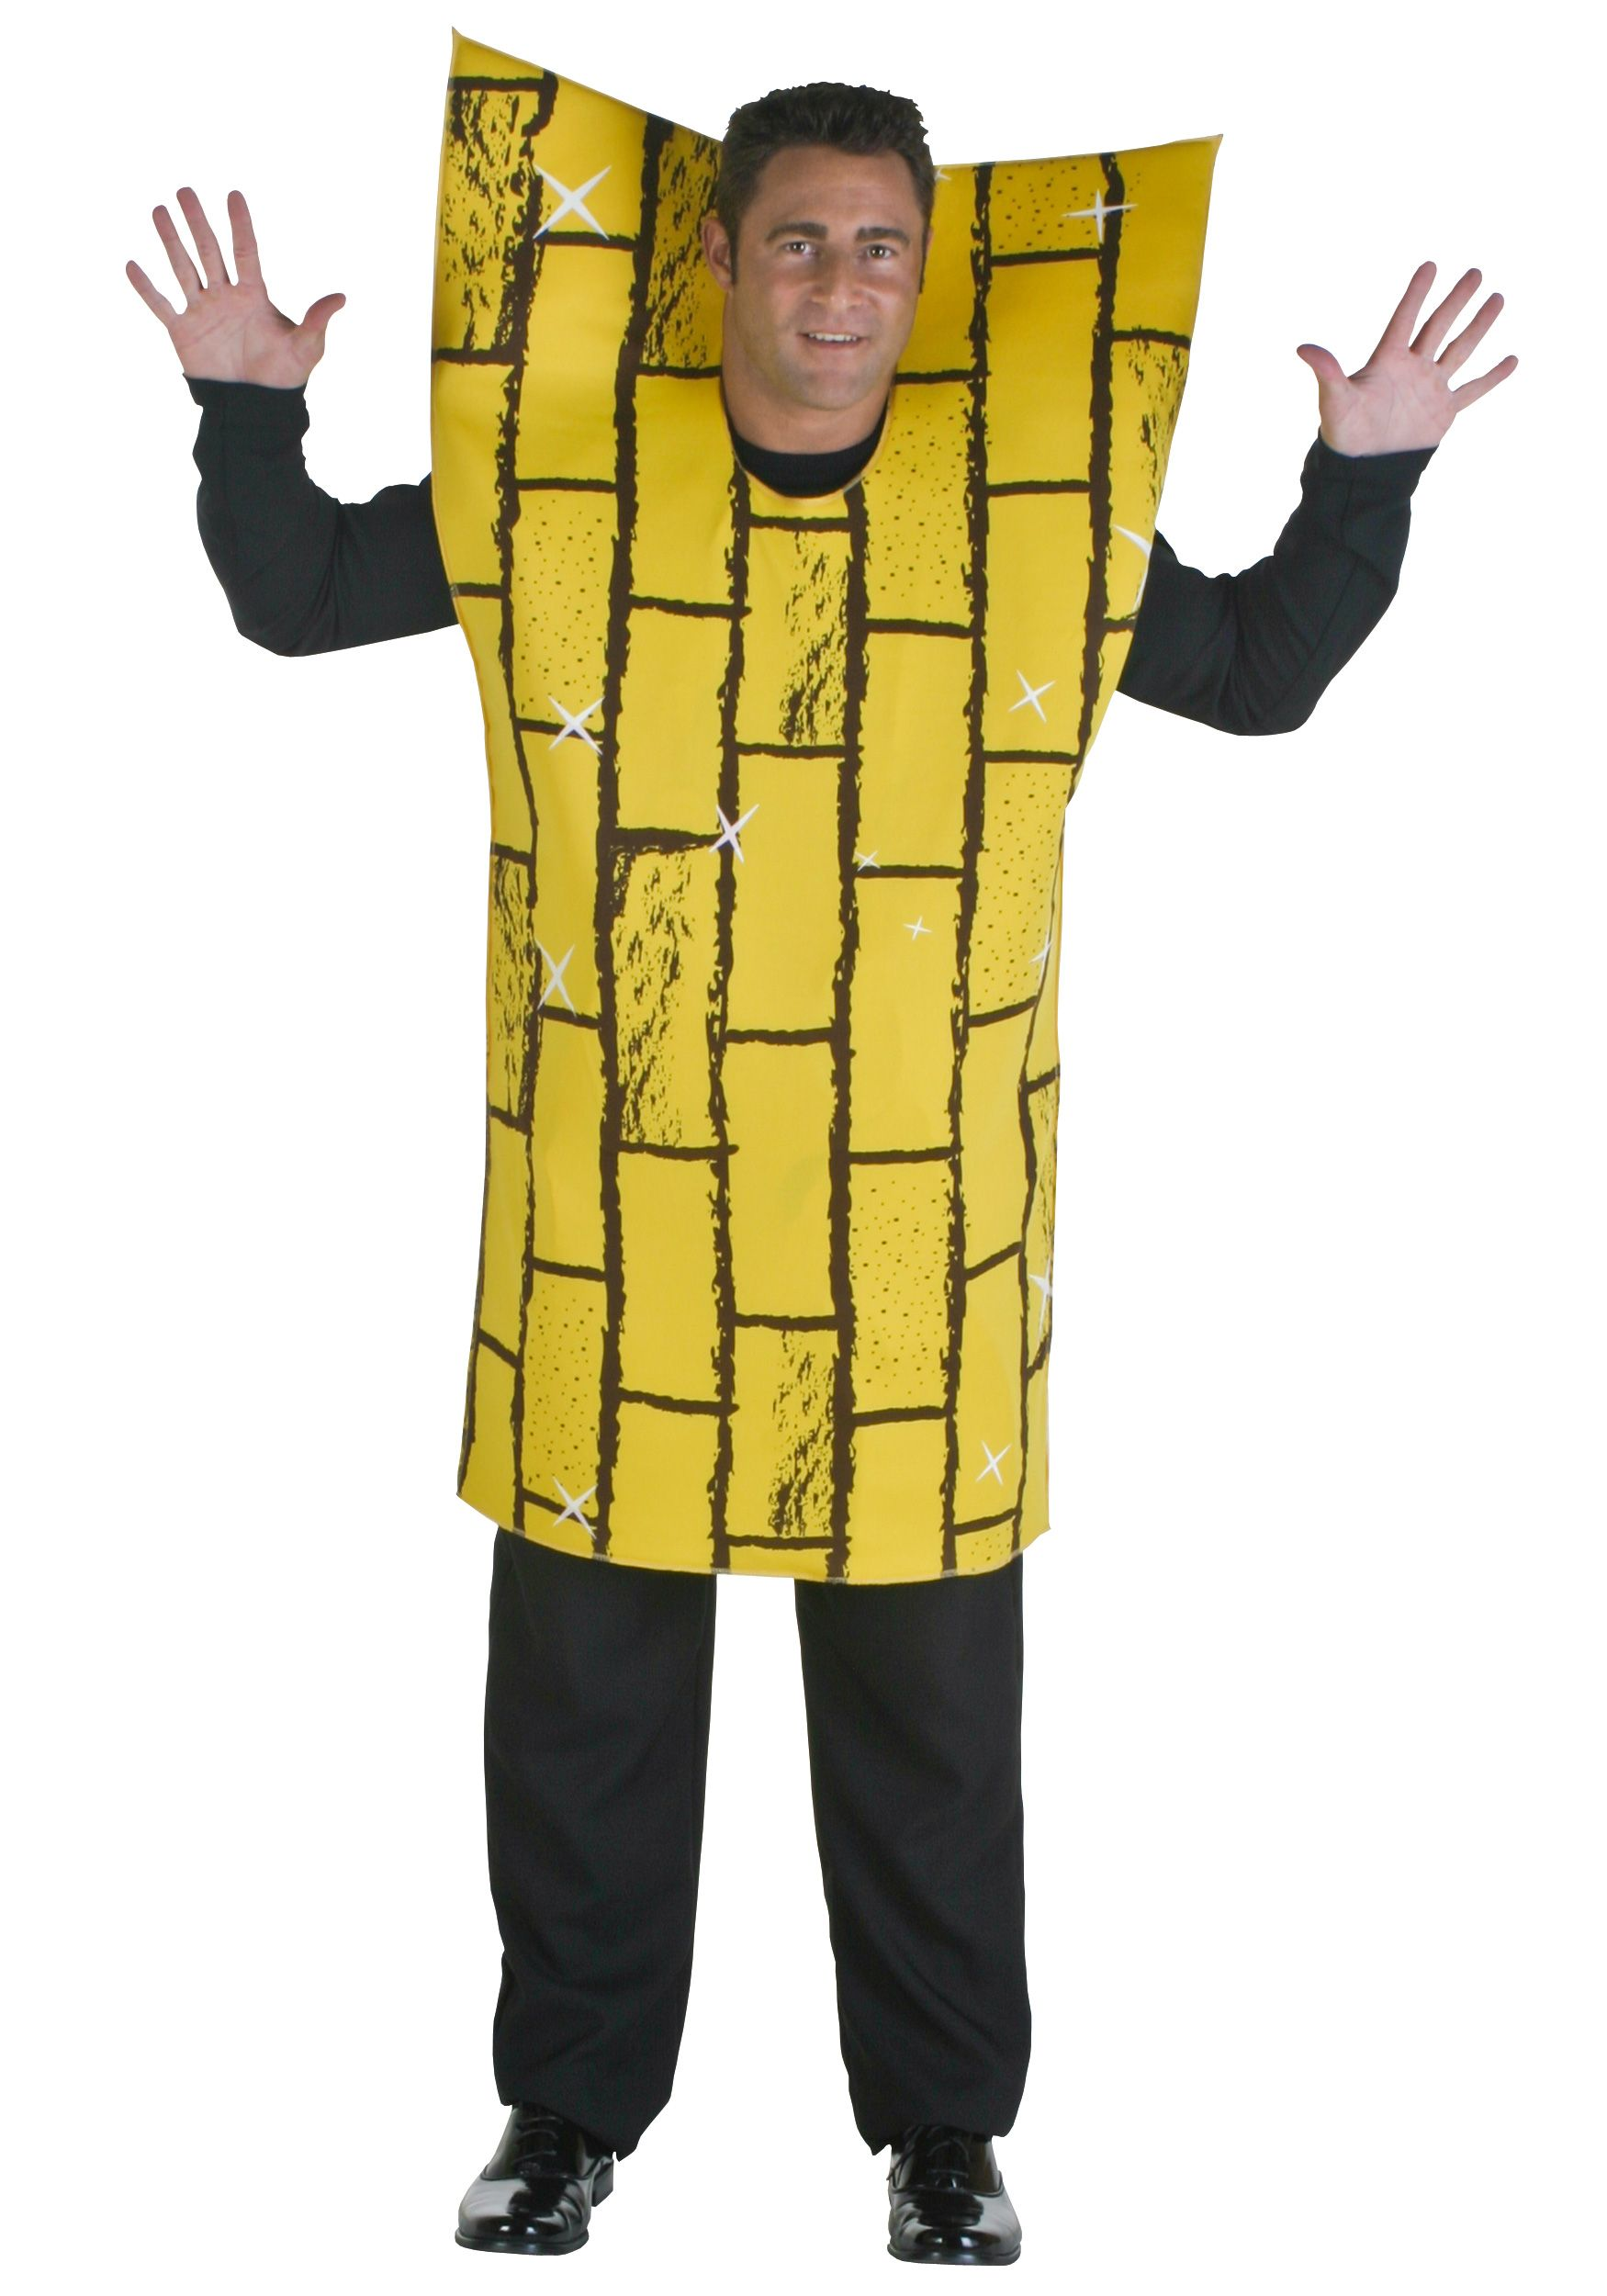 Image detail for -Yellow Brick Road Adult Costume - Unique Wizard of ...